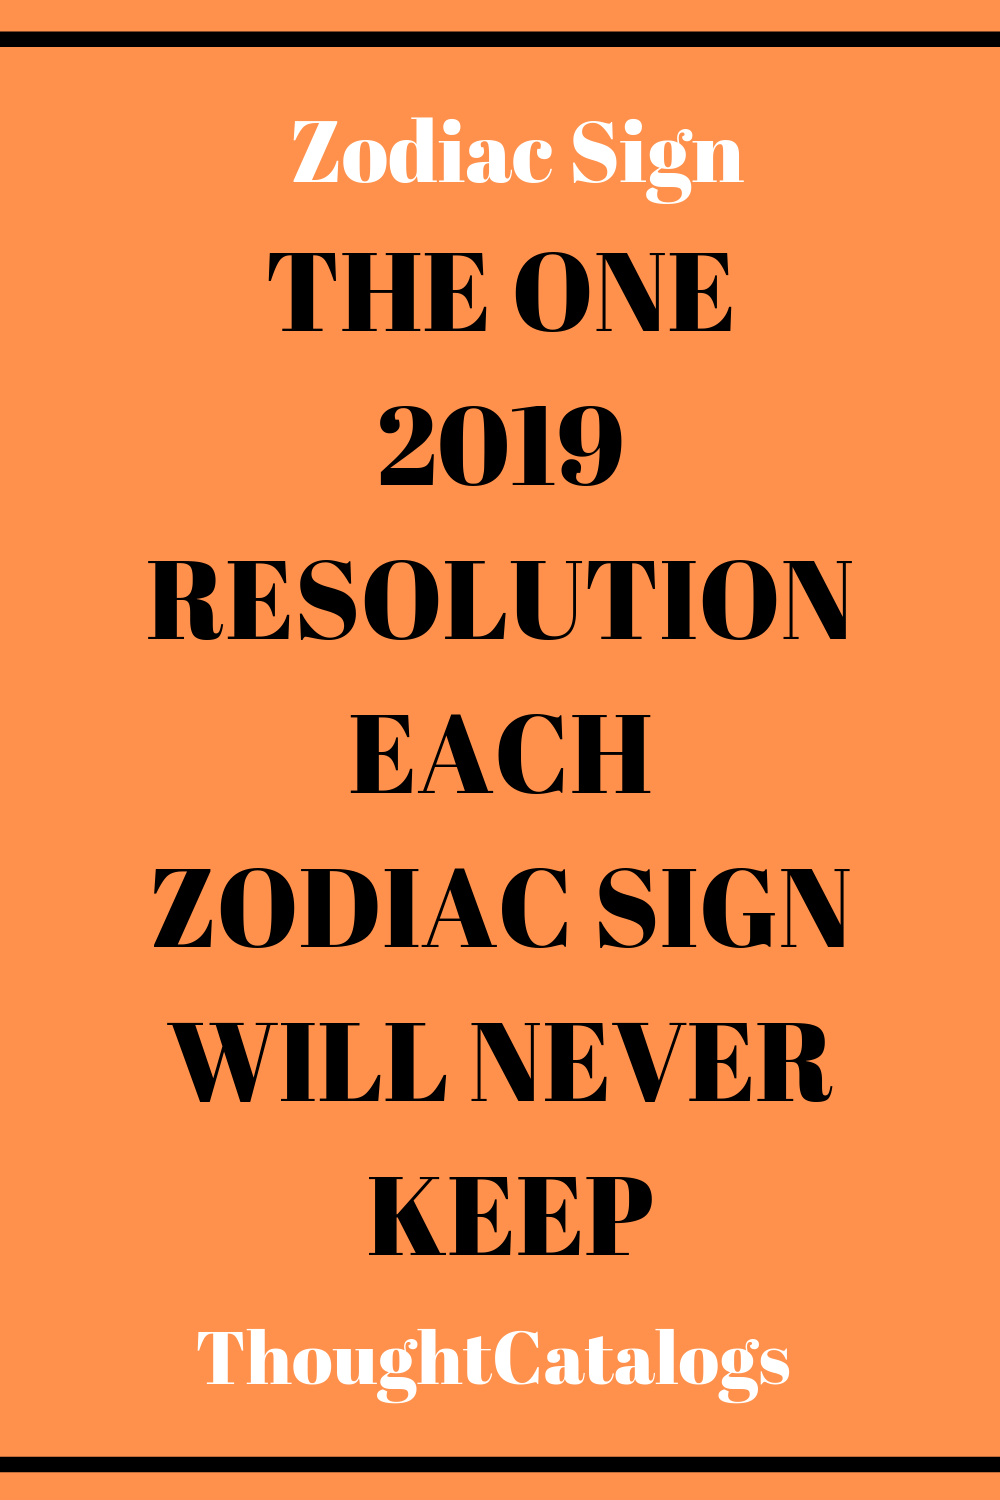 The One 2019 Resolution Each Zodiac Sign Will Never Keep